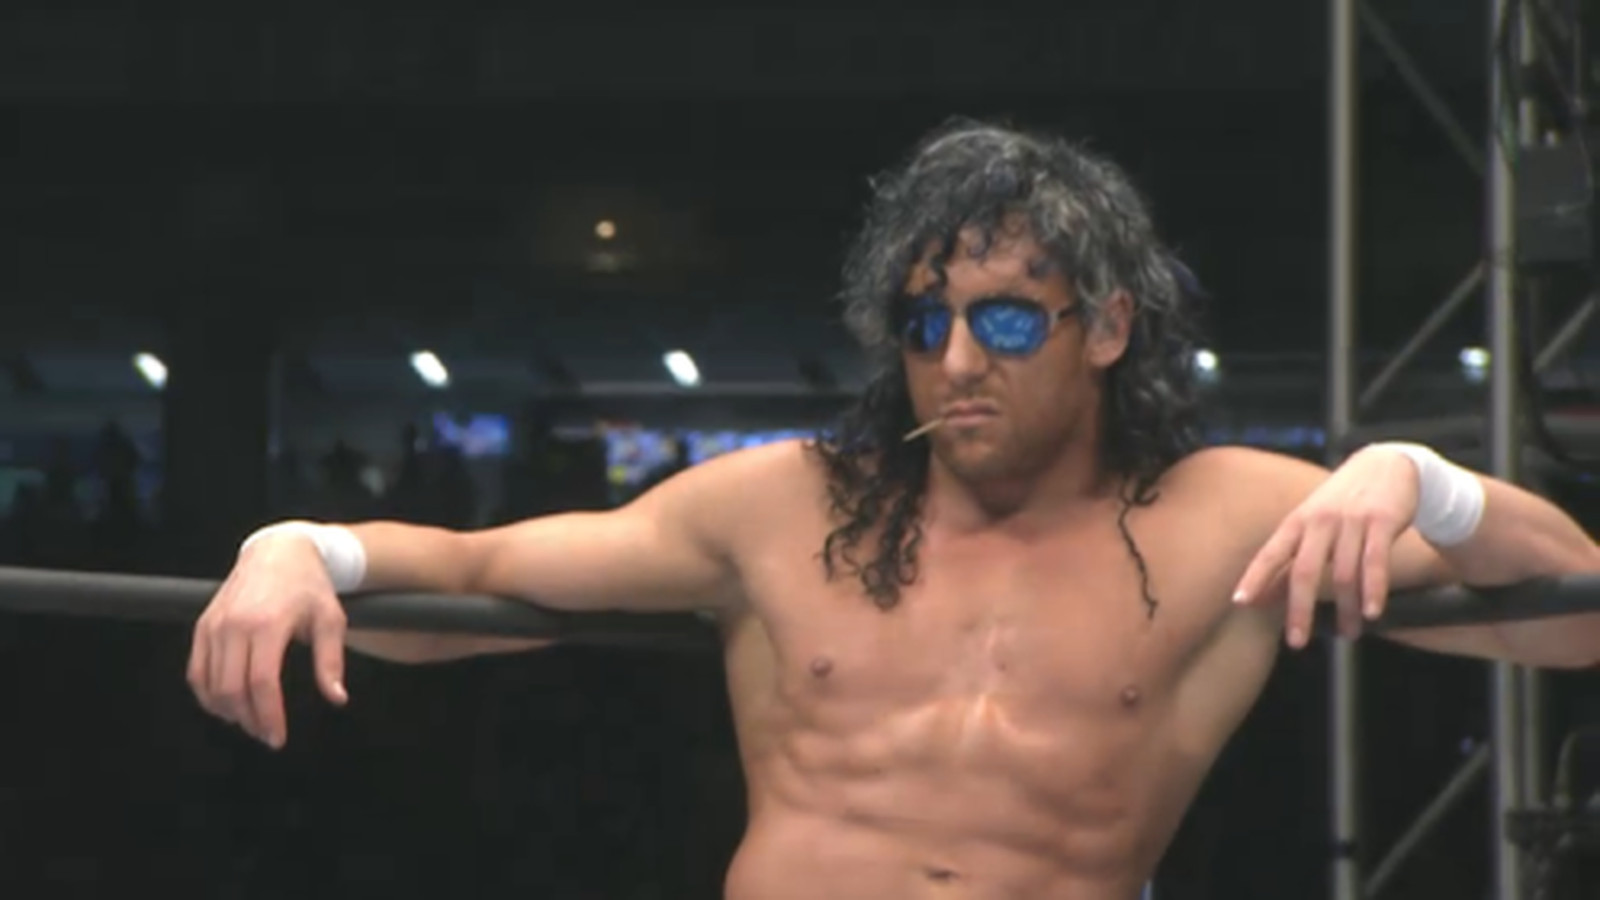 Who Is Kenny Omega of WWE, Is He Gay or Bisexual, What Is His Net Worth?